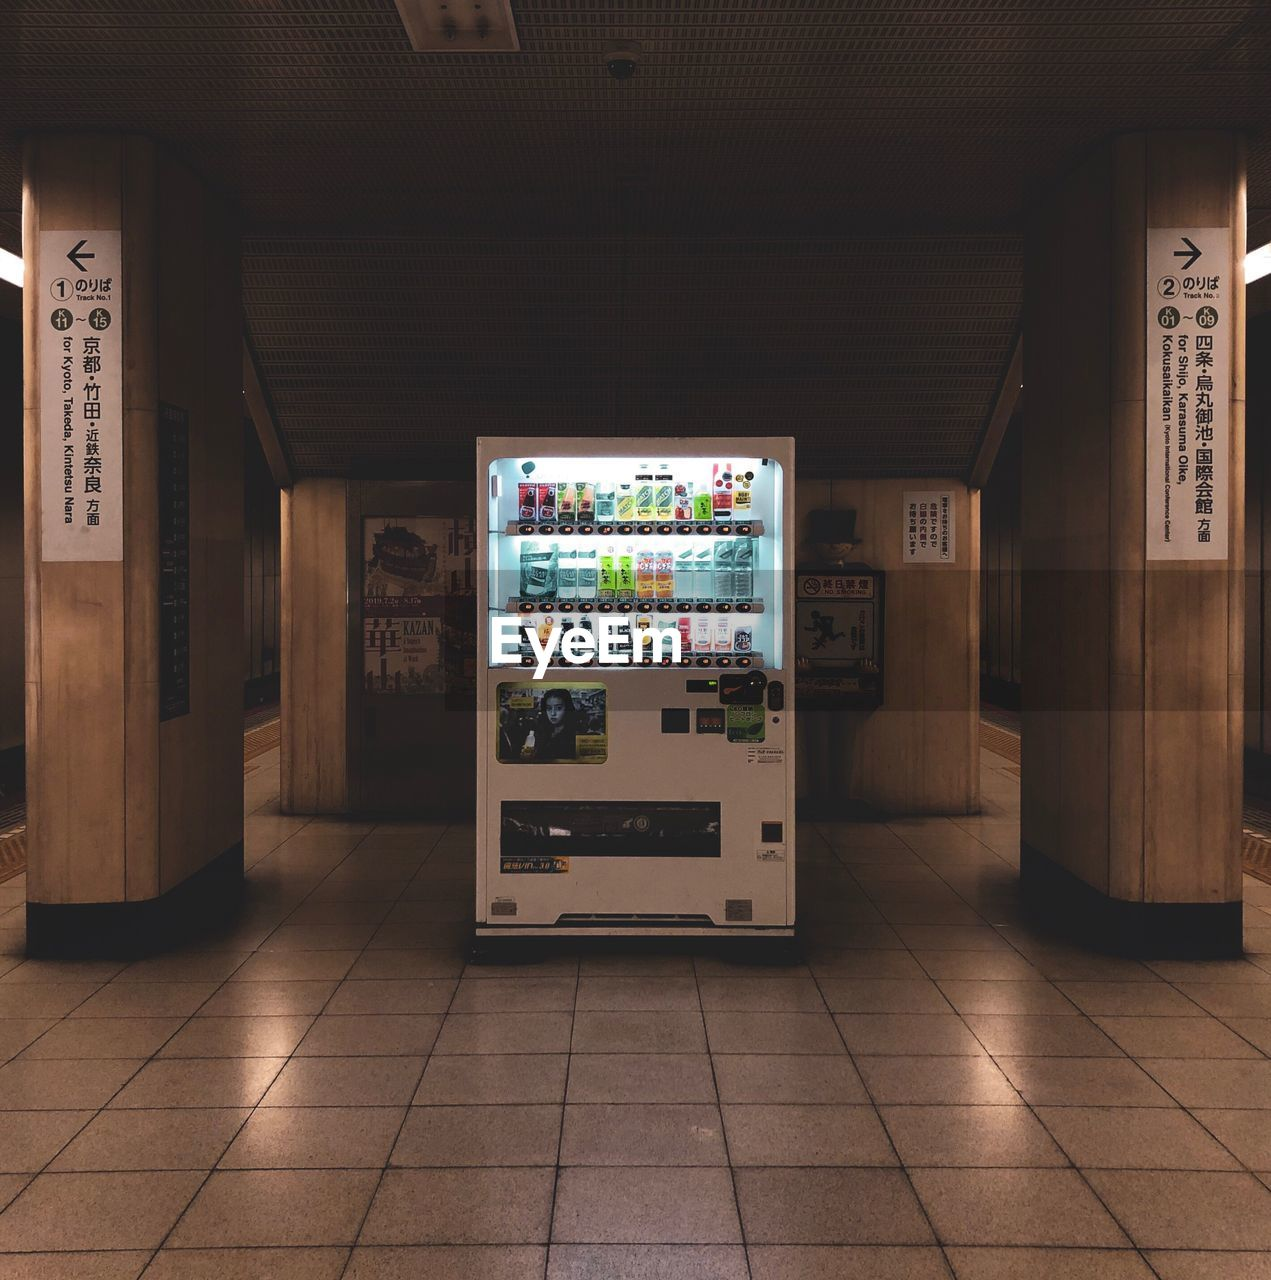 indoors, flooring, architecture, no people, communication, tile, built structure, text, illuminated, tiled floor, direction, empty, technology, western script, vending machine, appliance, wood - material, machinery, entrance, refrigerator, ceiling